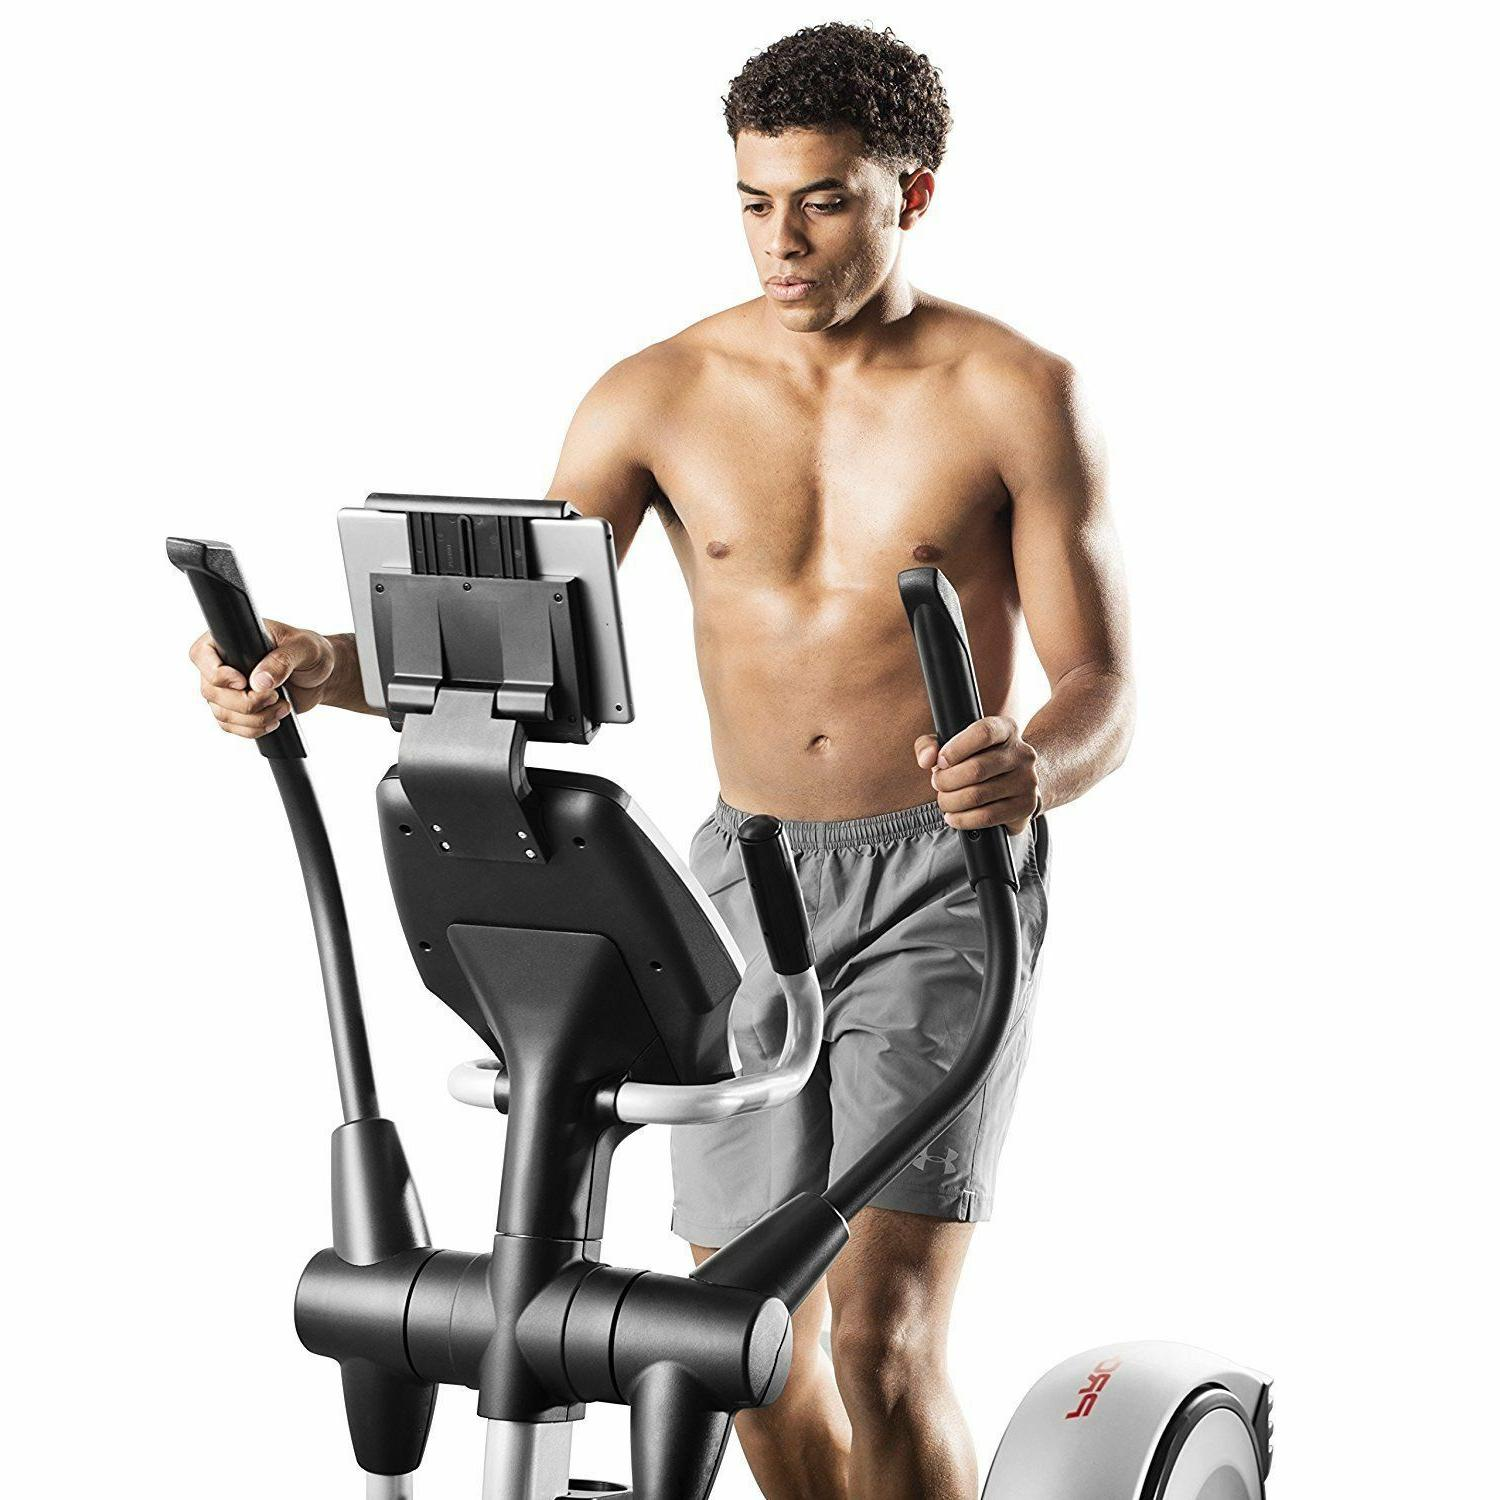 New Proform 495 CSE Elliptical, Machine